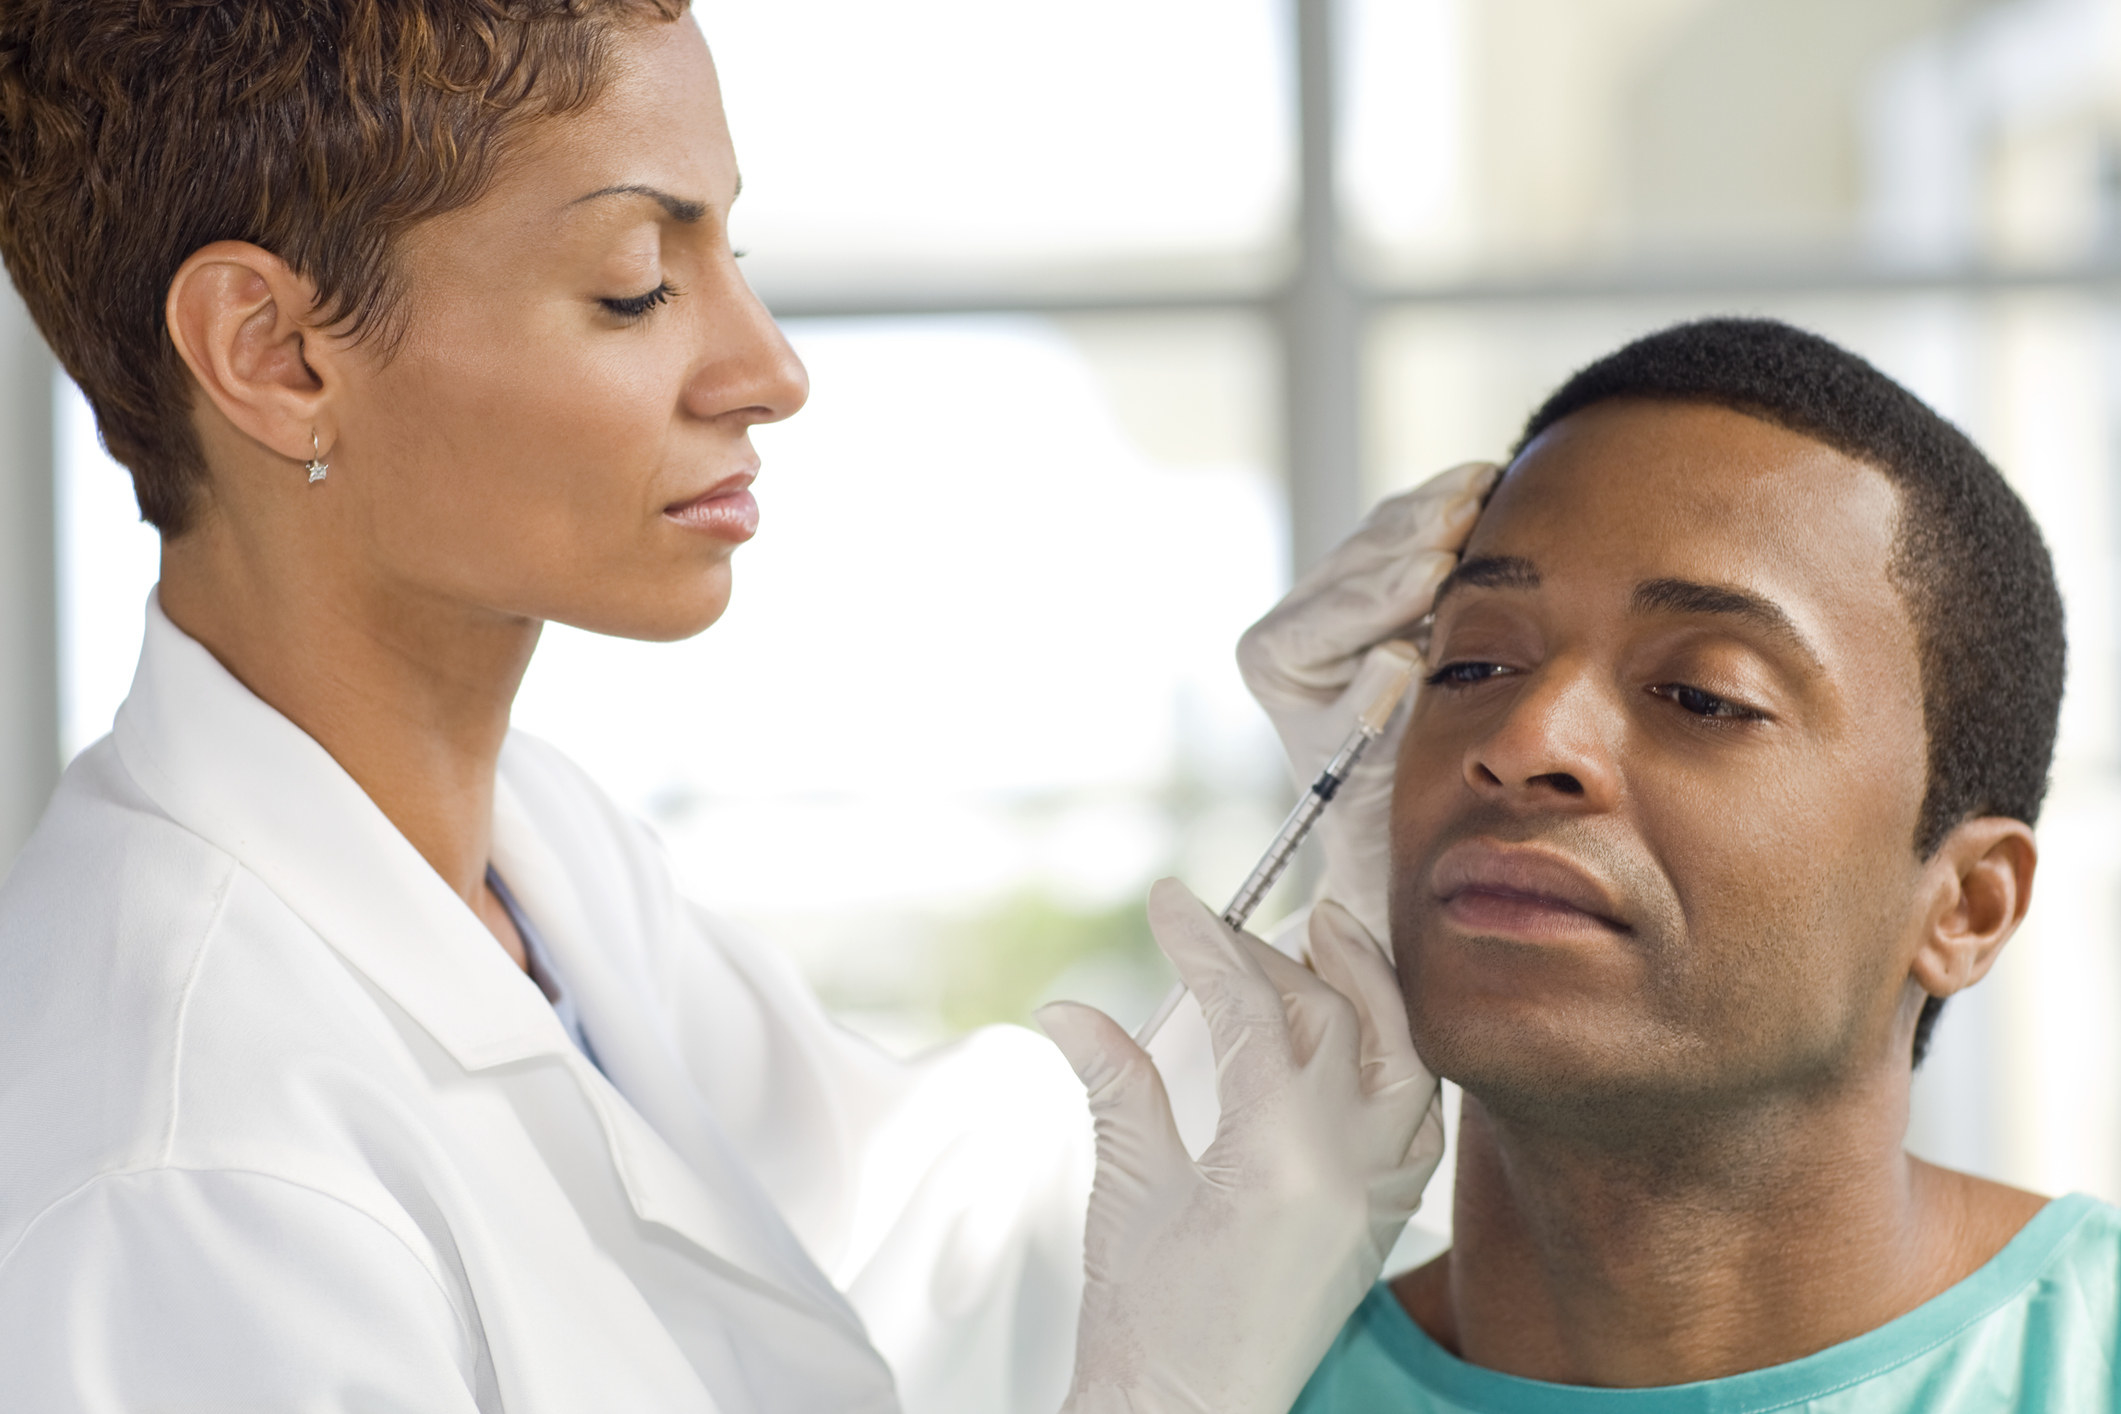 A doctor giving a man Botox injections